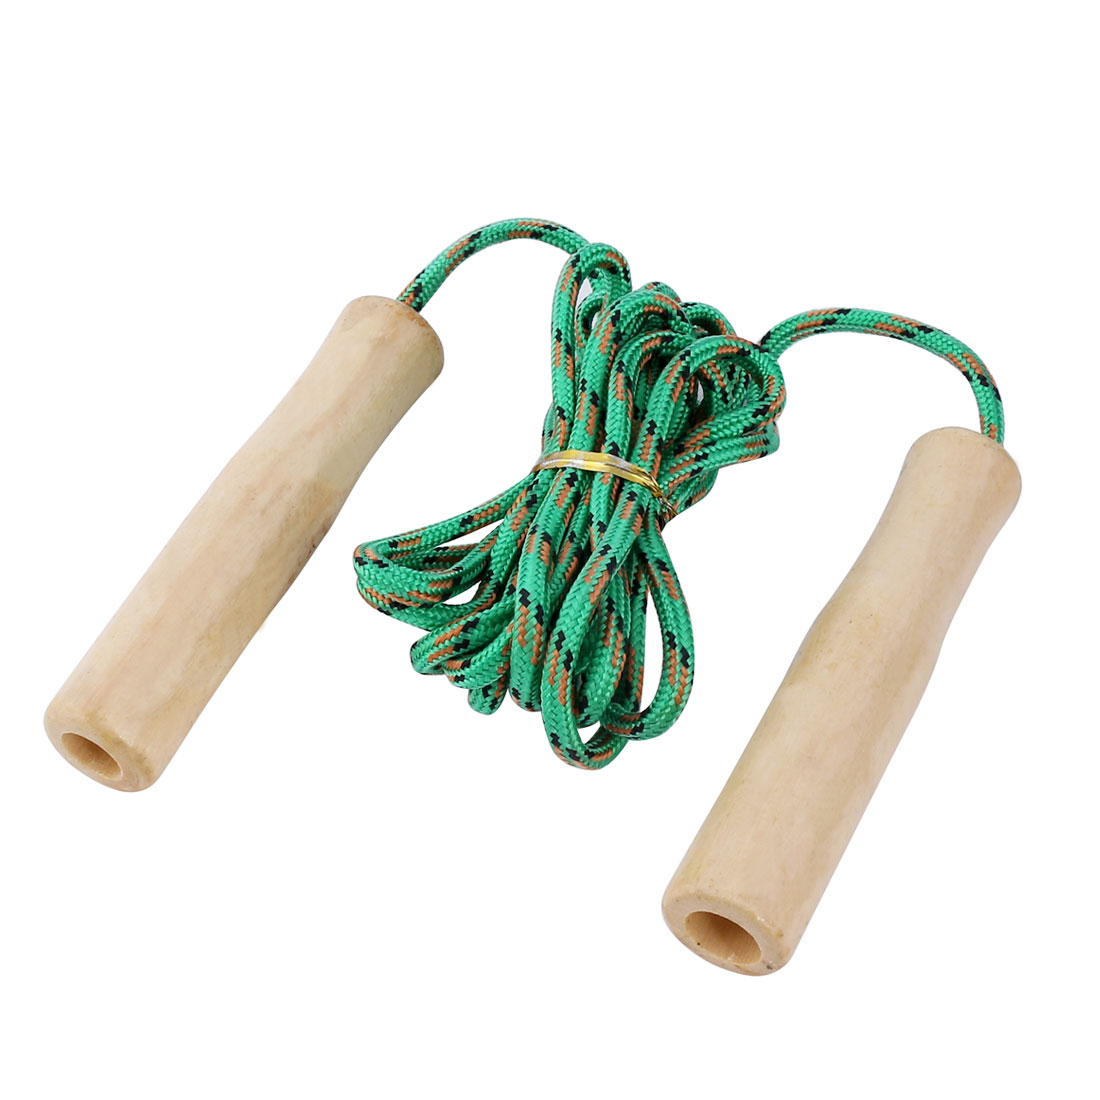 Fitness Exercise Wooden Handle Skipping Jumping Rope 8.5ft Length